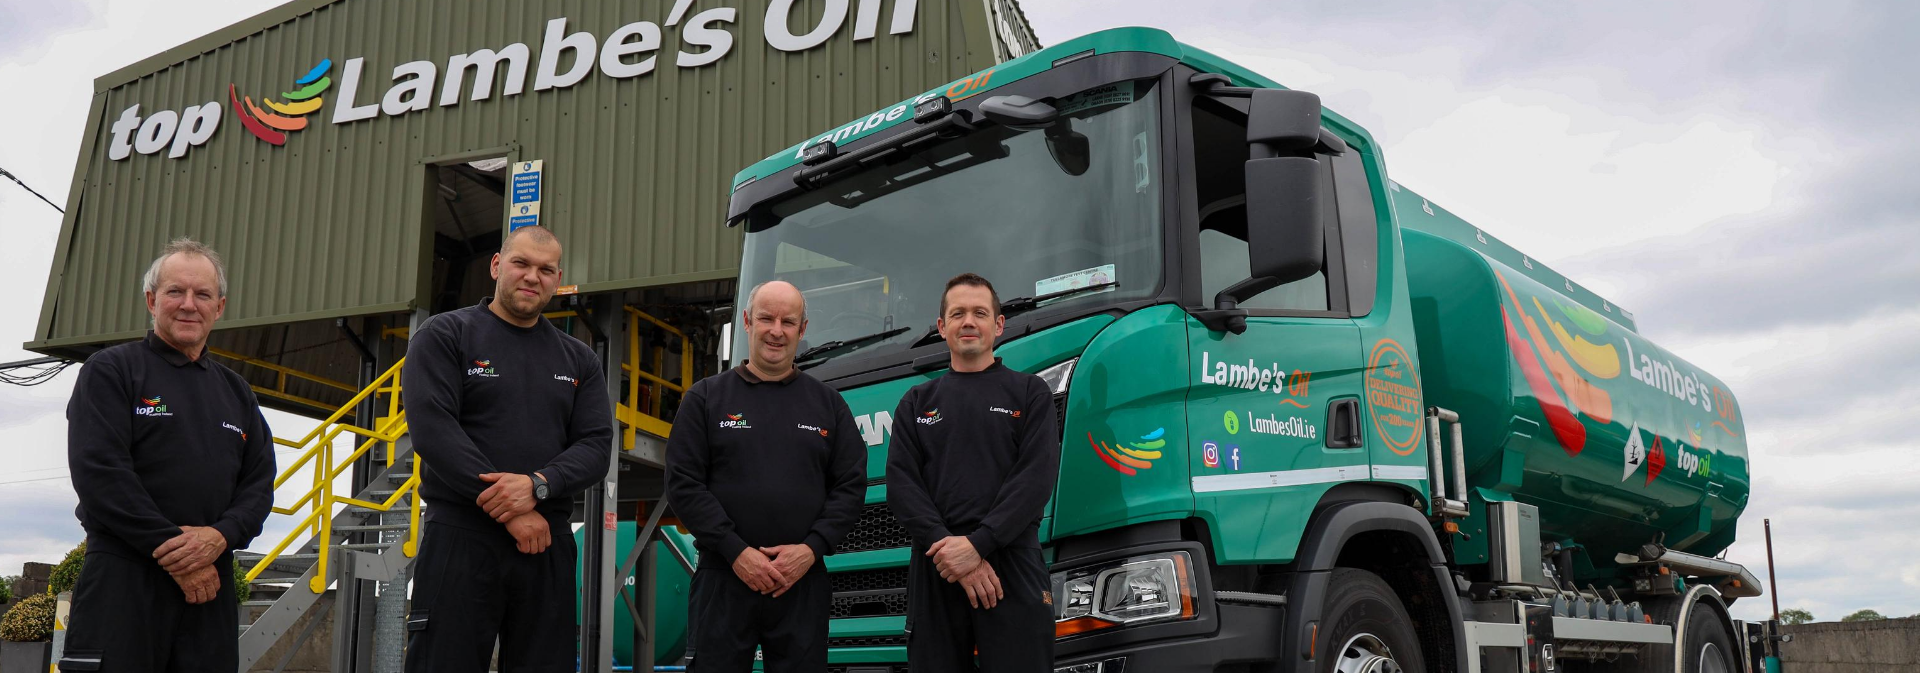 Lambes Oil Drivers at our Depot in Offaly